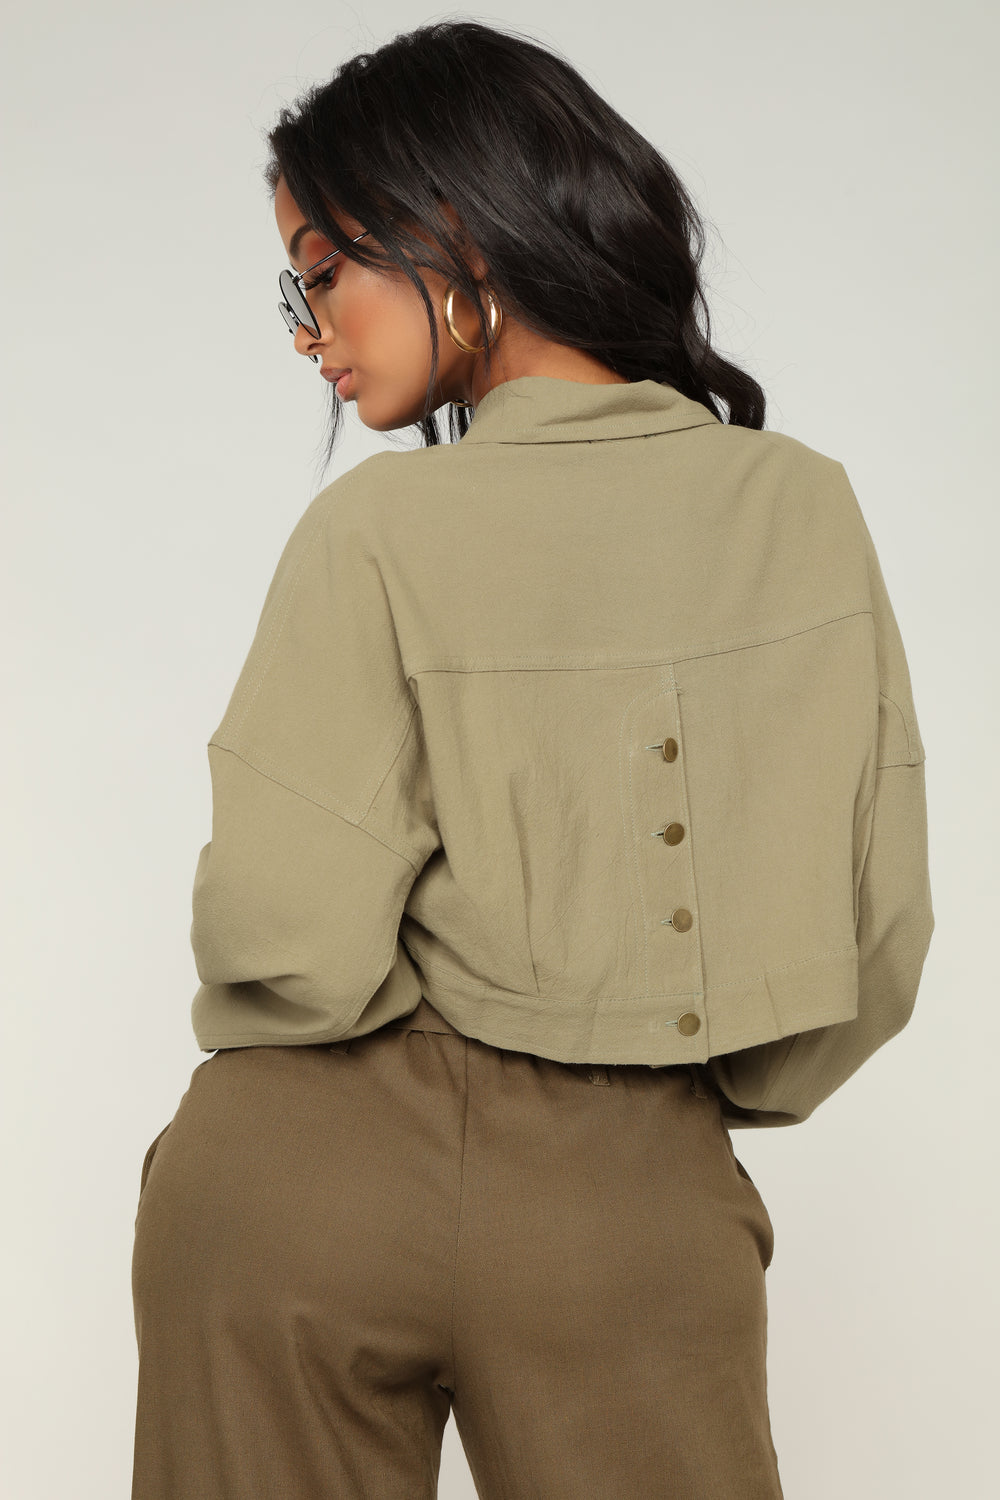 Analia II Cropped Jacket - Olive